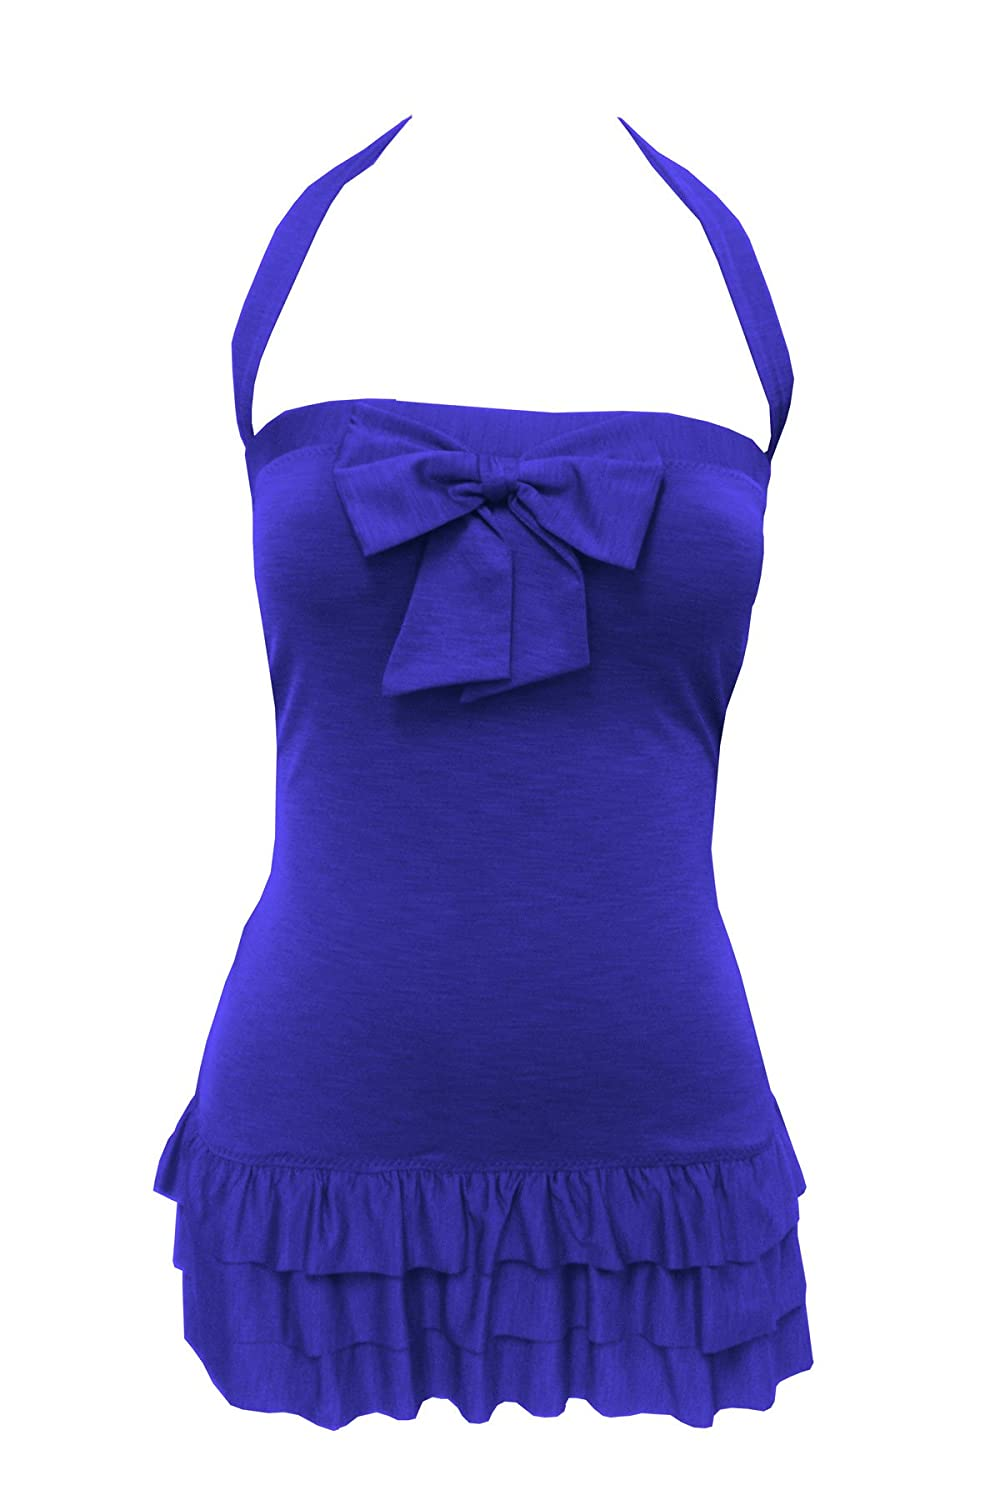 Betsey Johnson Blueberry Blue Retro Swimdress with bow and ruffles